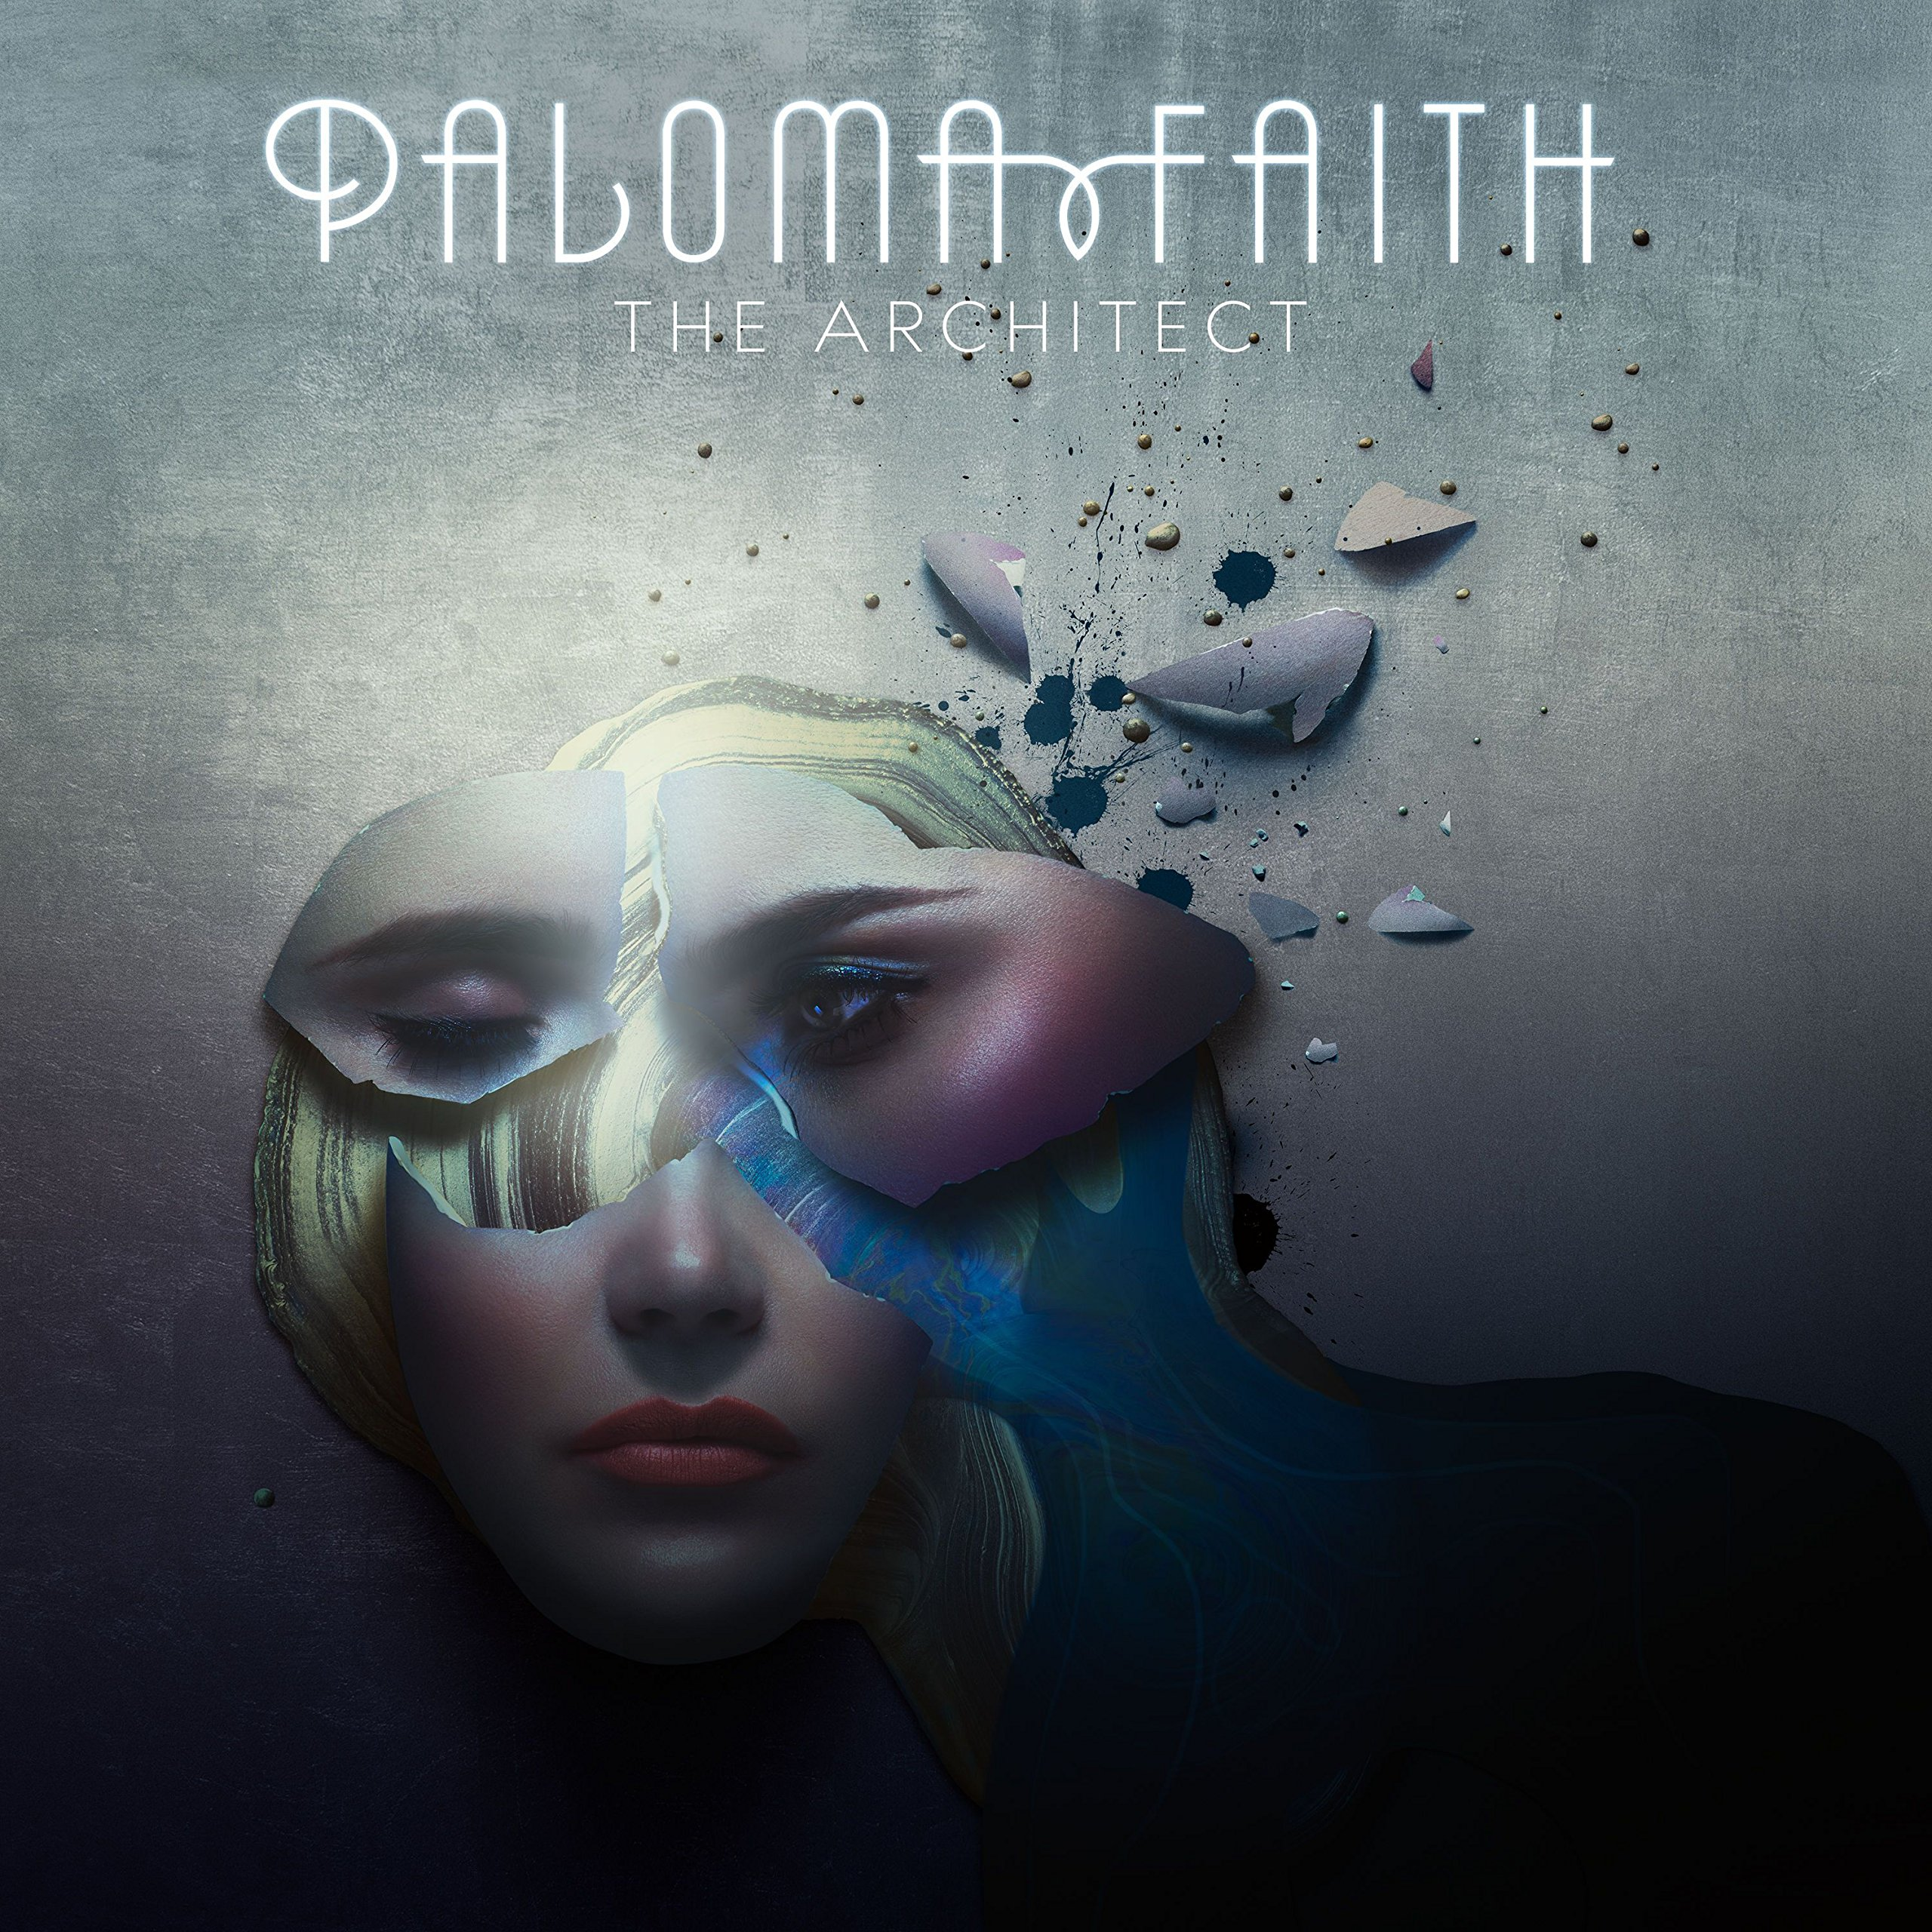 Paloma Faith - Architect (Deluxe Edition, United Kingdom - Import)